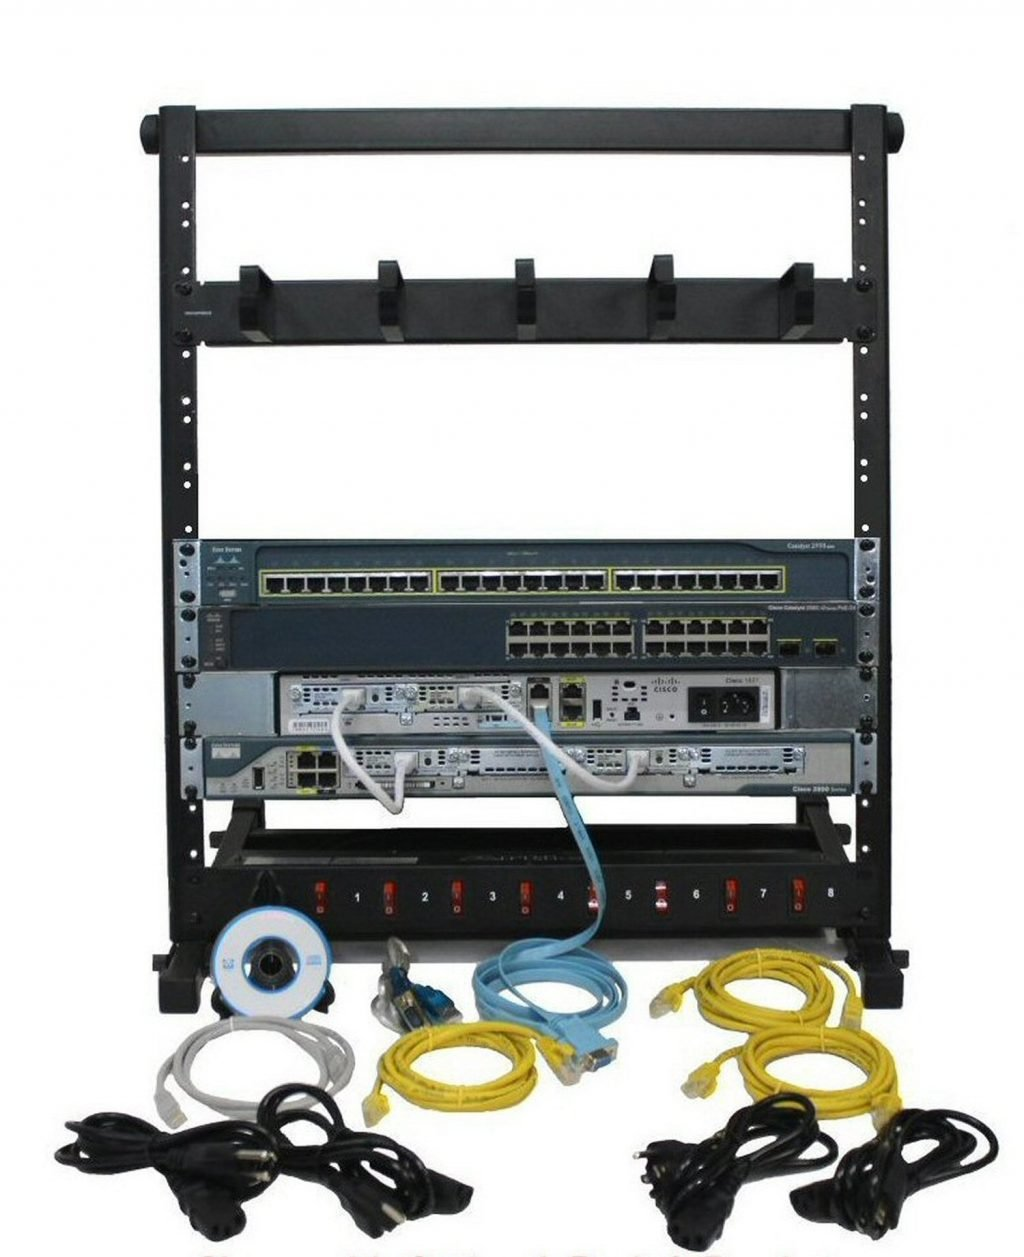 CCNA Routing & Switching Student Intro Lab Kit